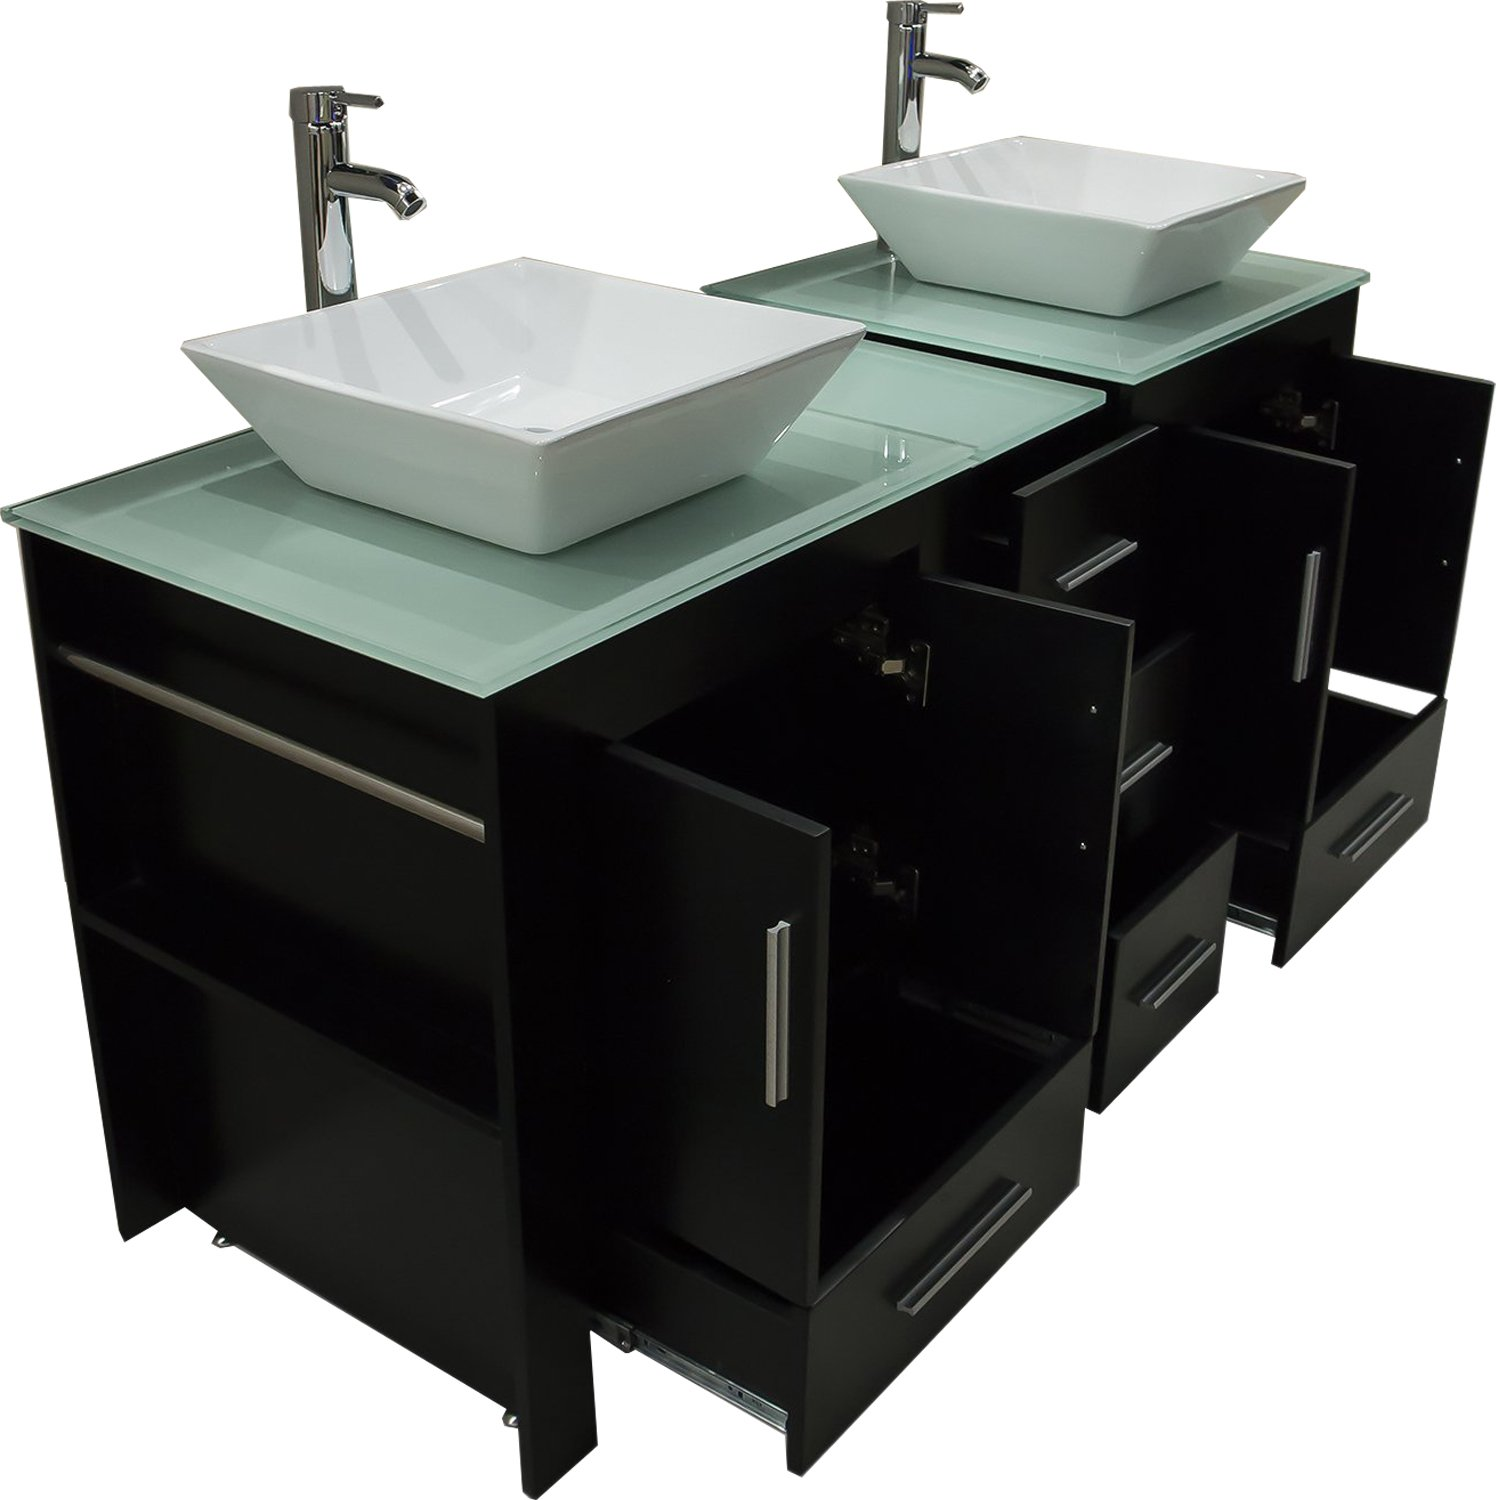 Walcut Luxury 60'' Modern Double Ceramic Sink Solid Wood Bathroom Vanity Cabinet With Mirror And Tempered Glass Table Board by WALCUT (Image #5)